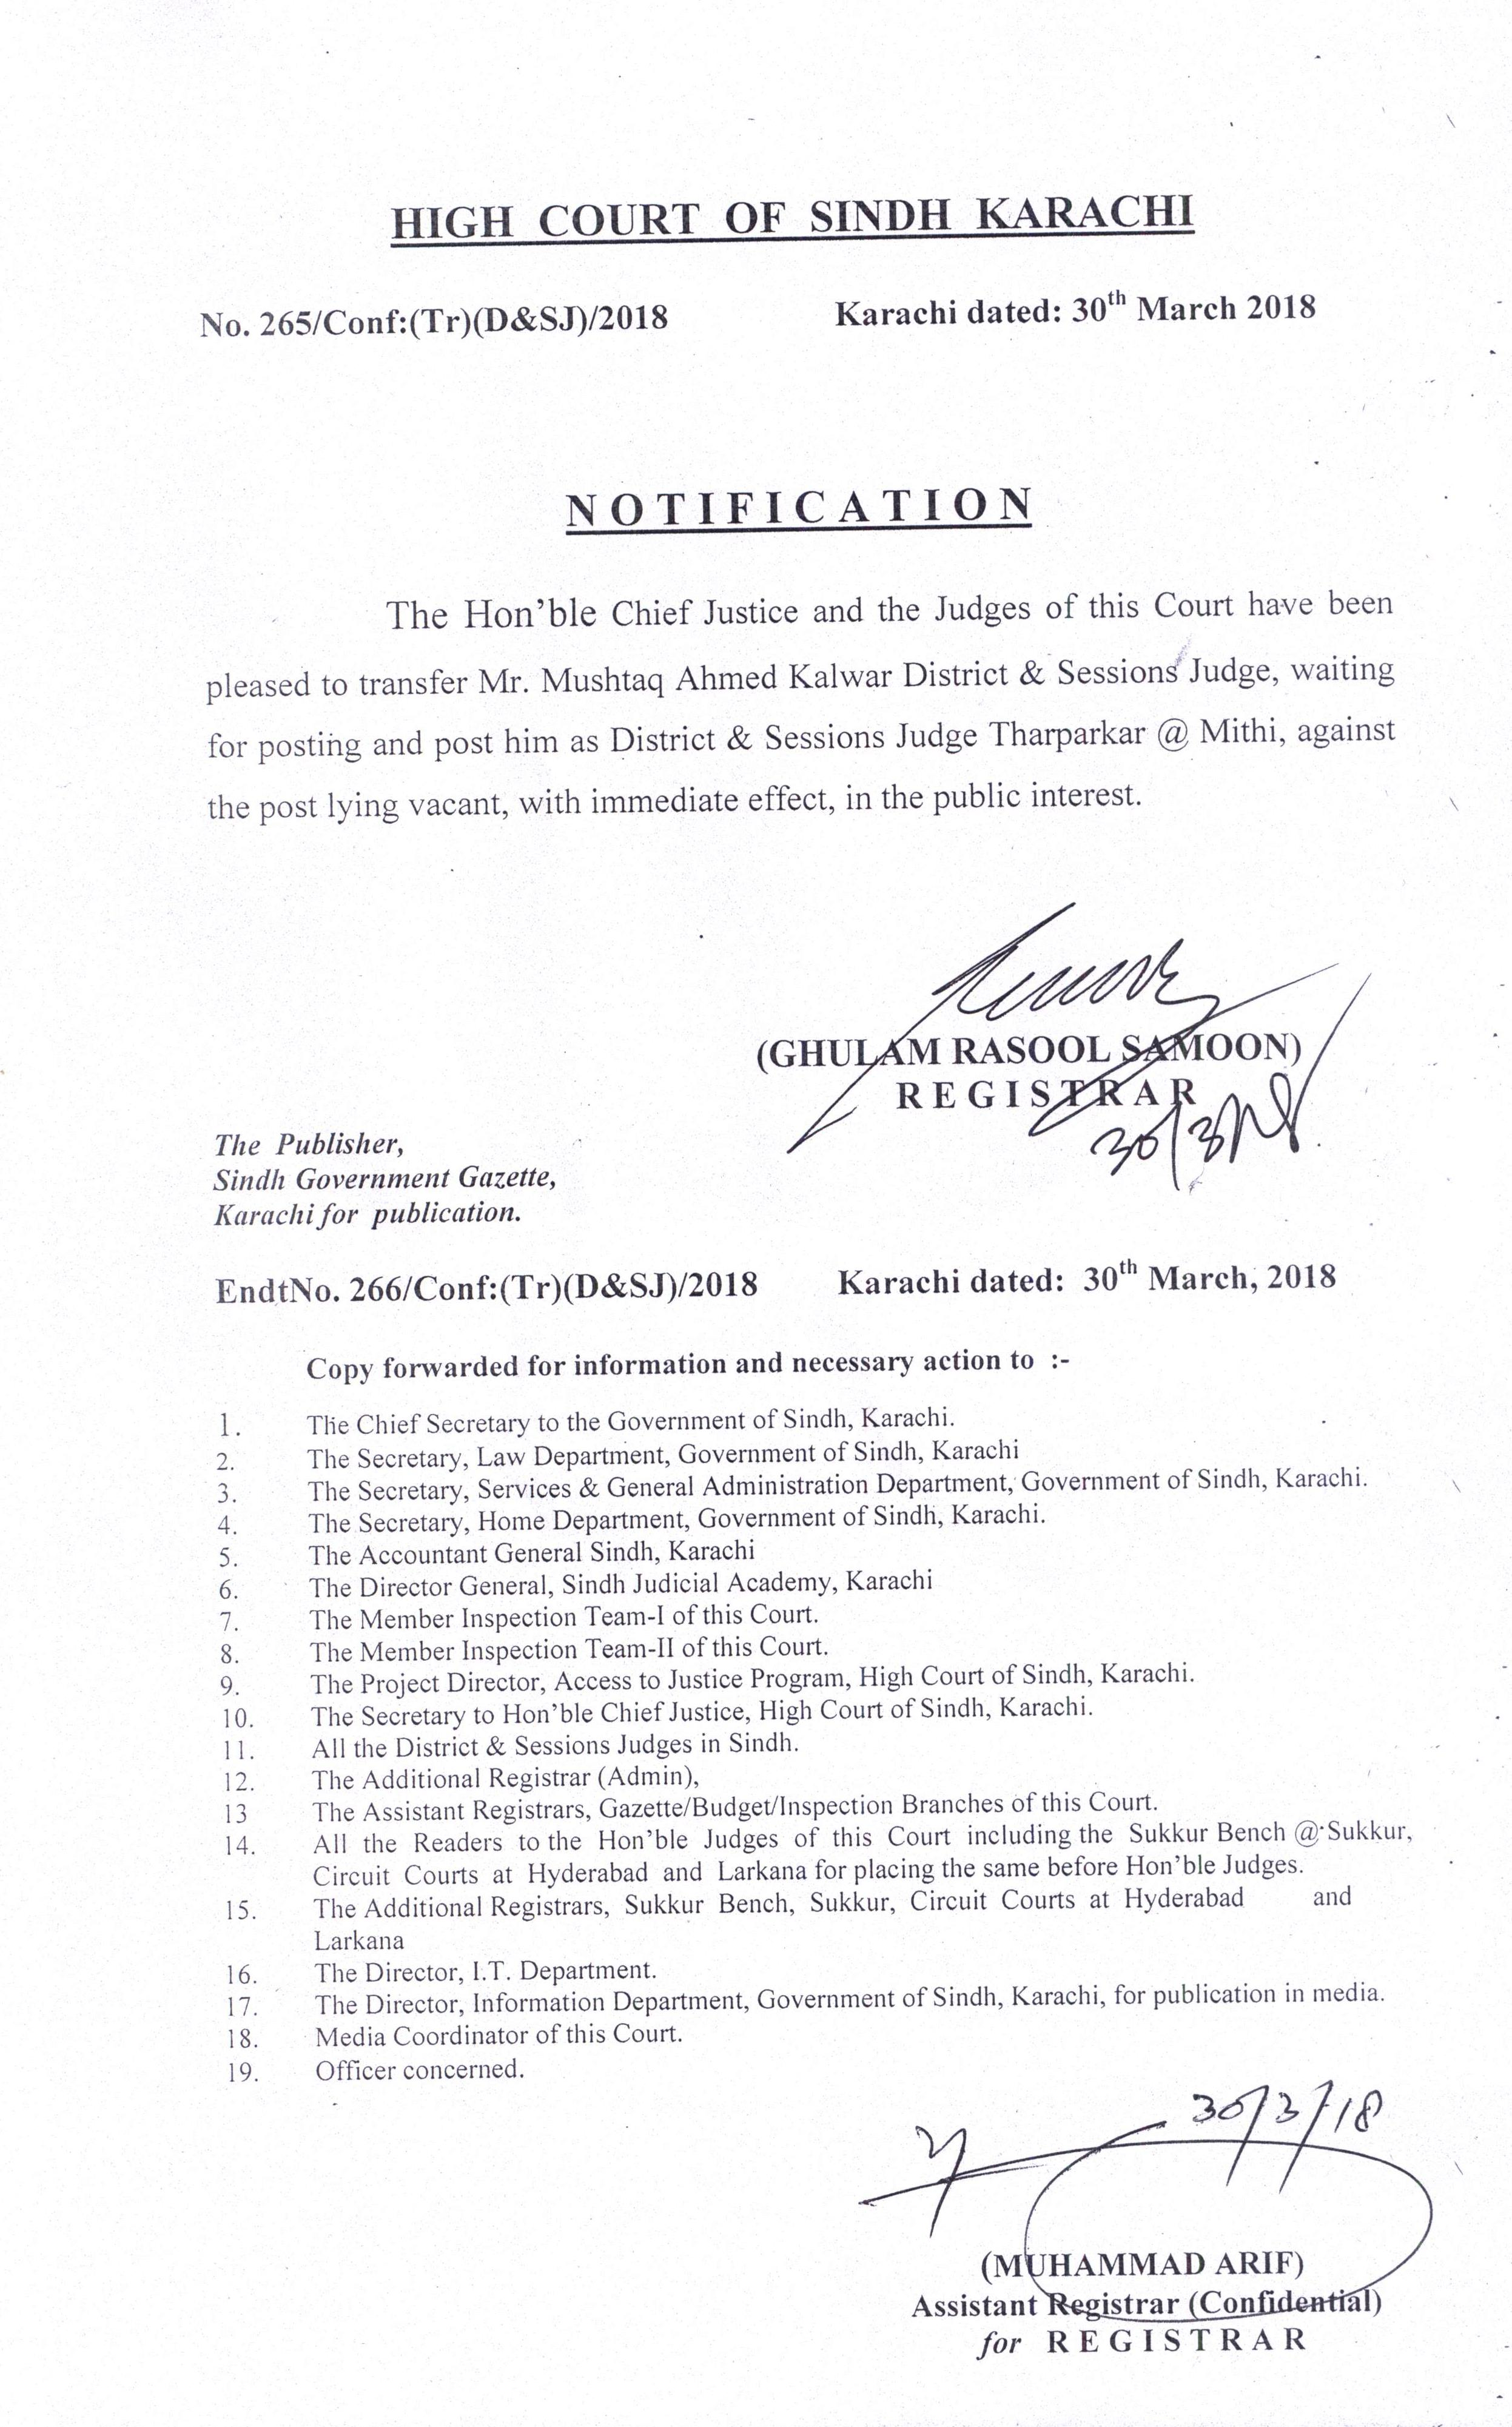 Welcome to High Court of Sindh